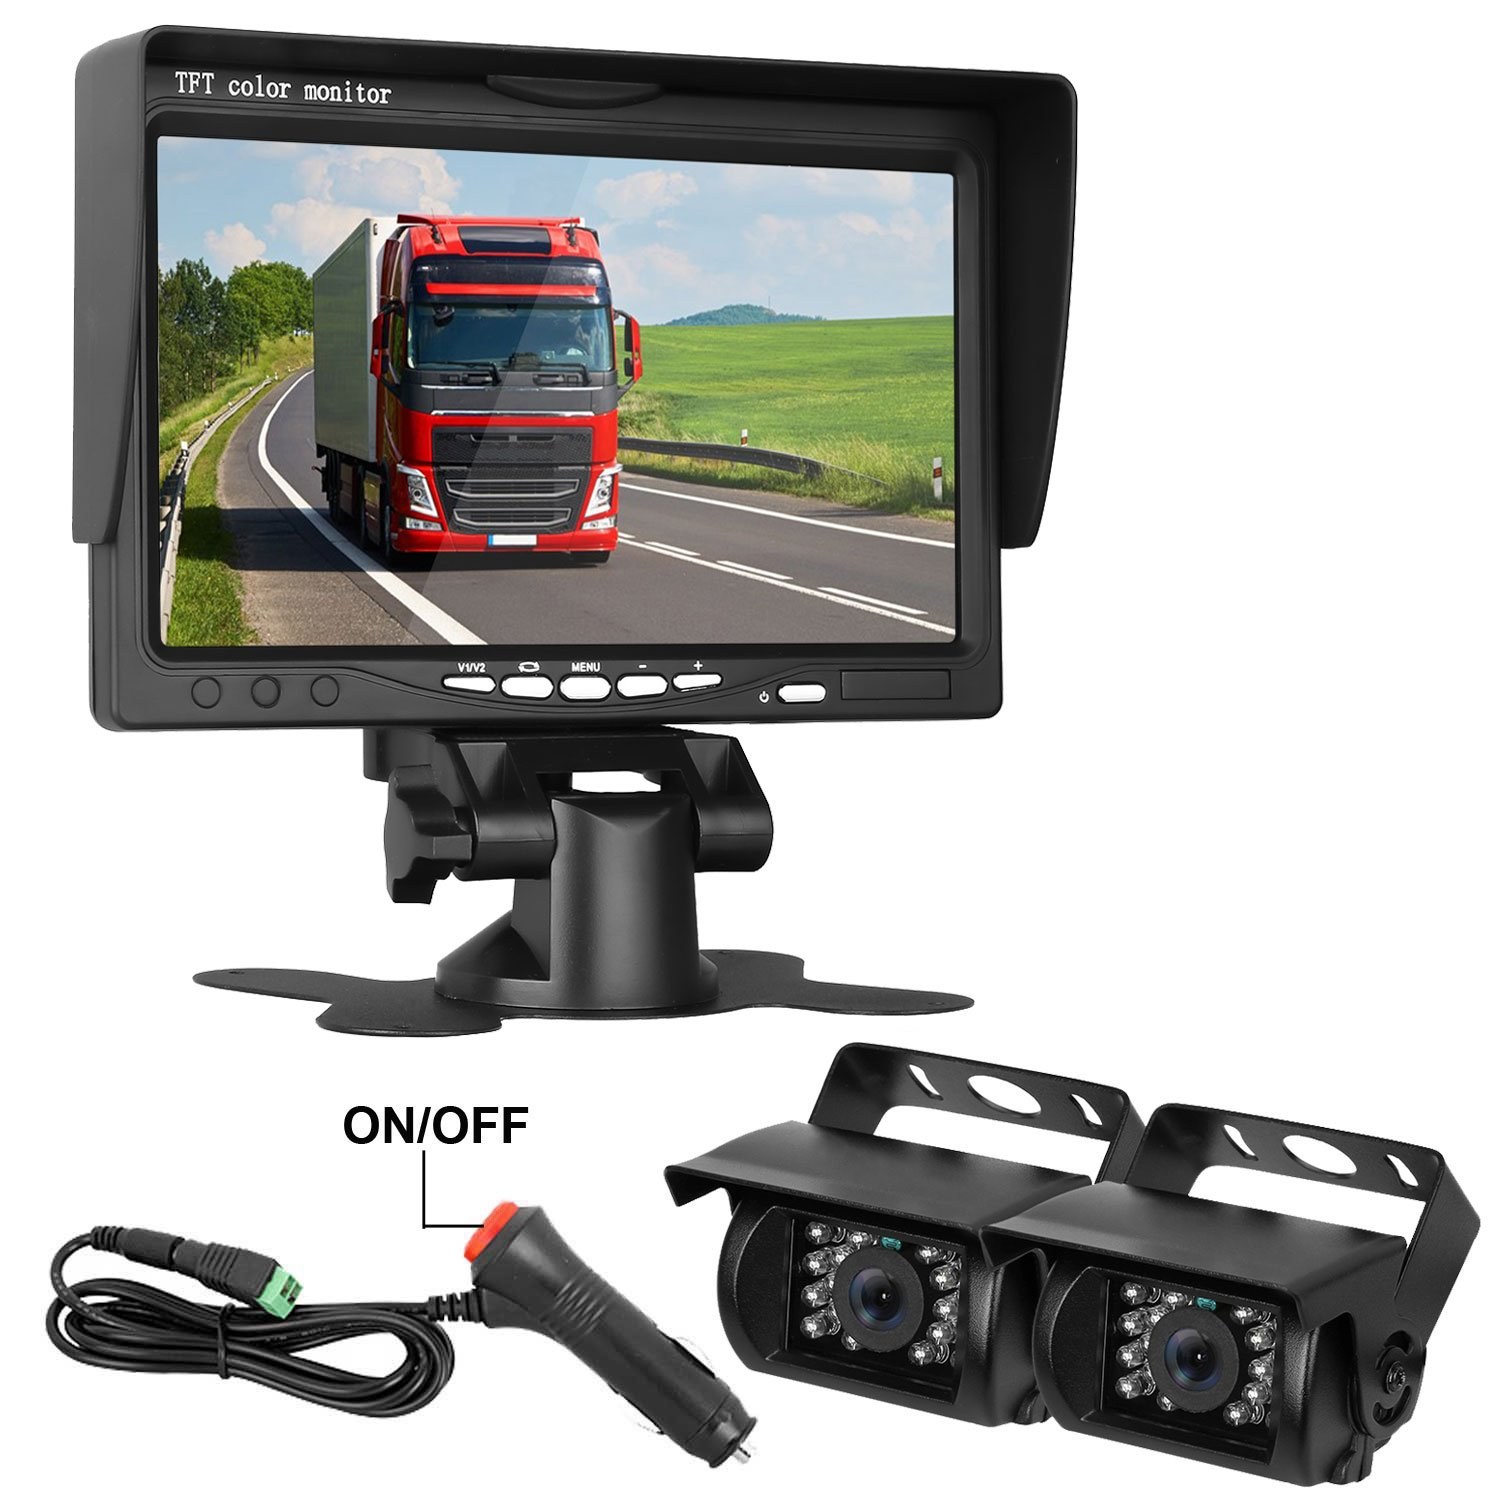 HD 720P Backup Camera and 7'' Monitor Kit, 2 Cameras for School Bus/Trailer/RV/Truck/Pick up/Van Rear View Camera Single Power System IP68 Waterproof Night Vision Driving/Reversing Use